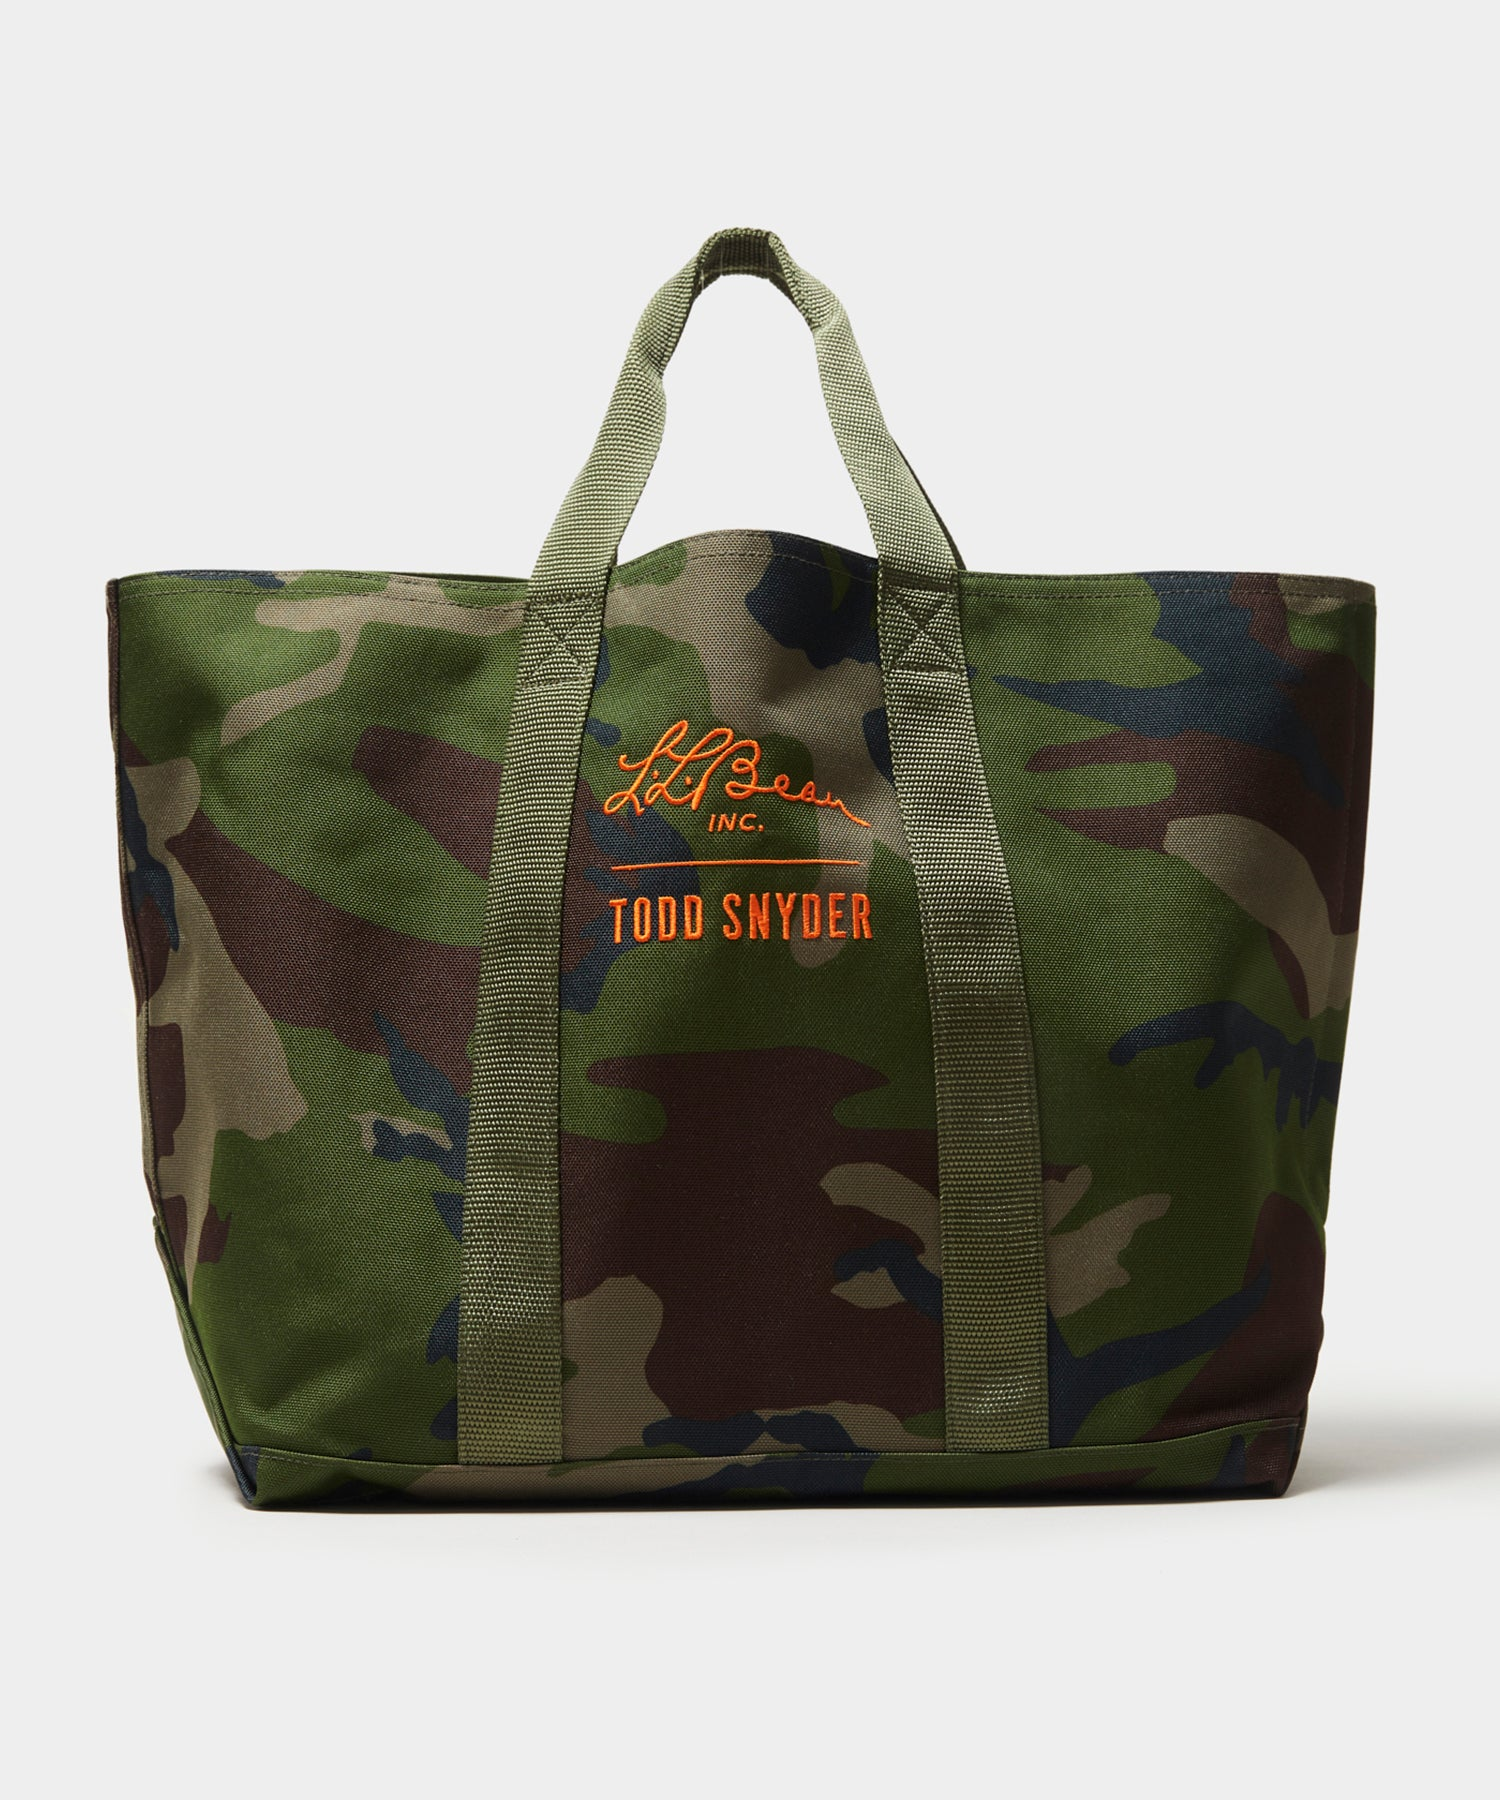 L.L.Bean x Todd Snyder Hunter's Tote in Camouflage